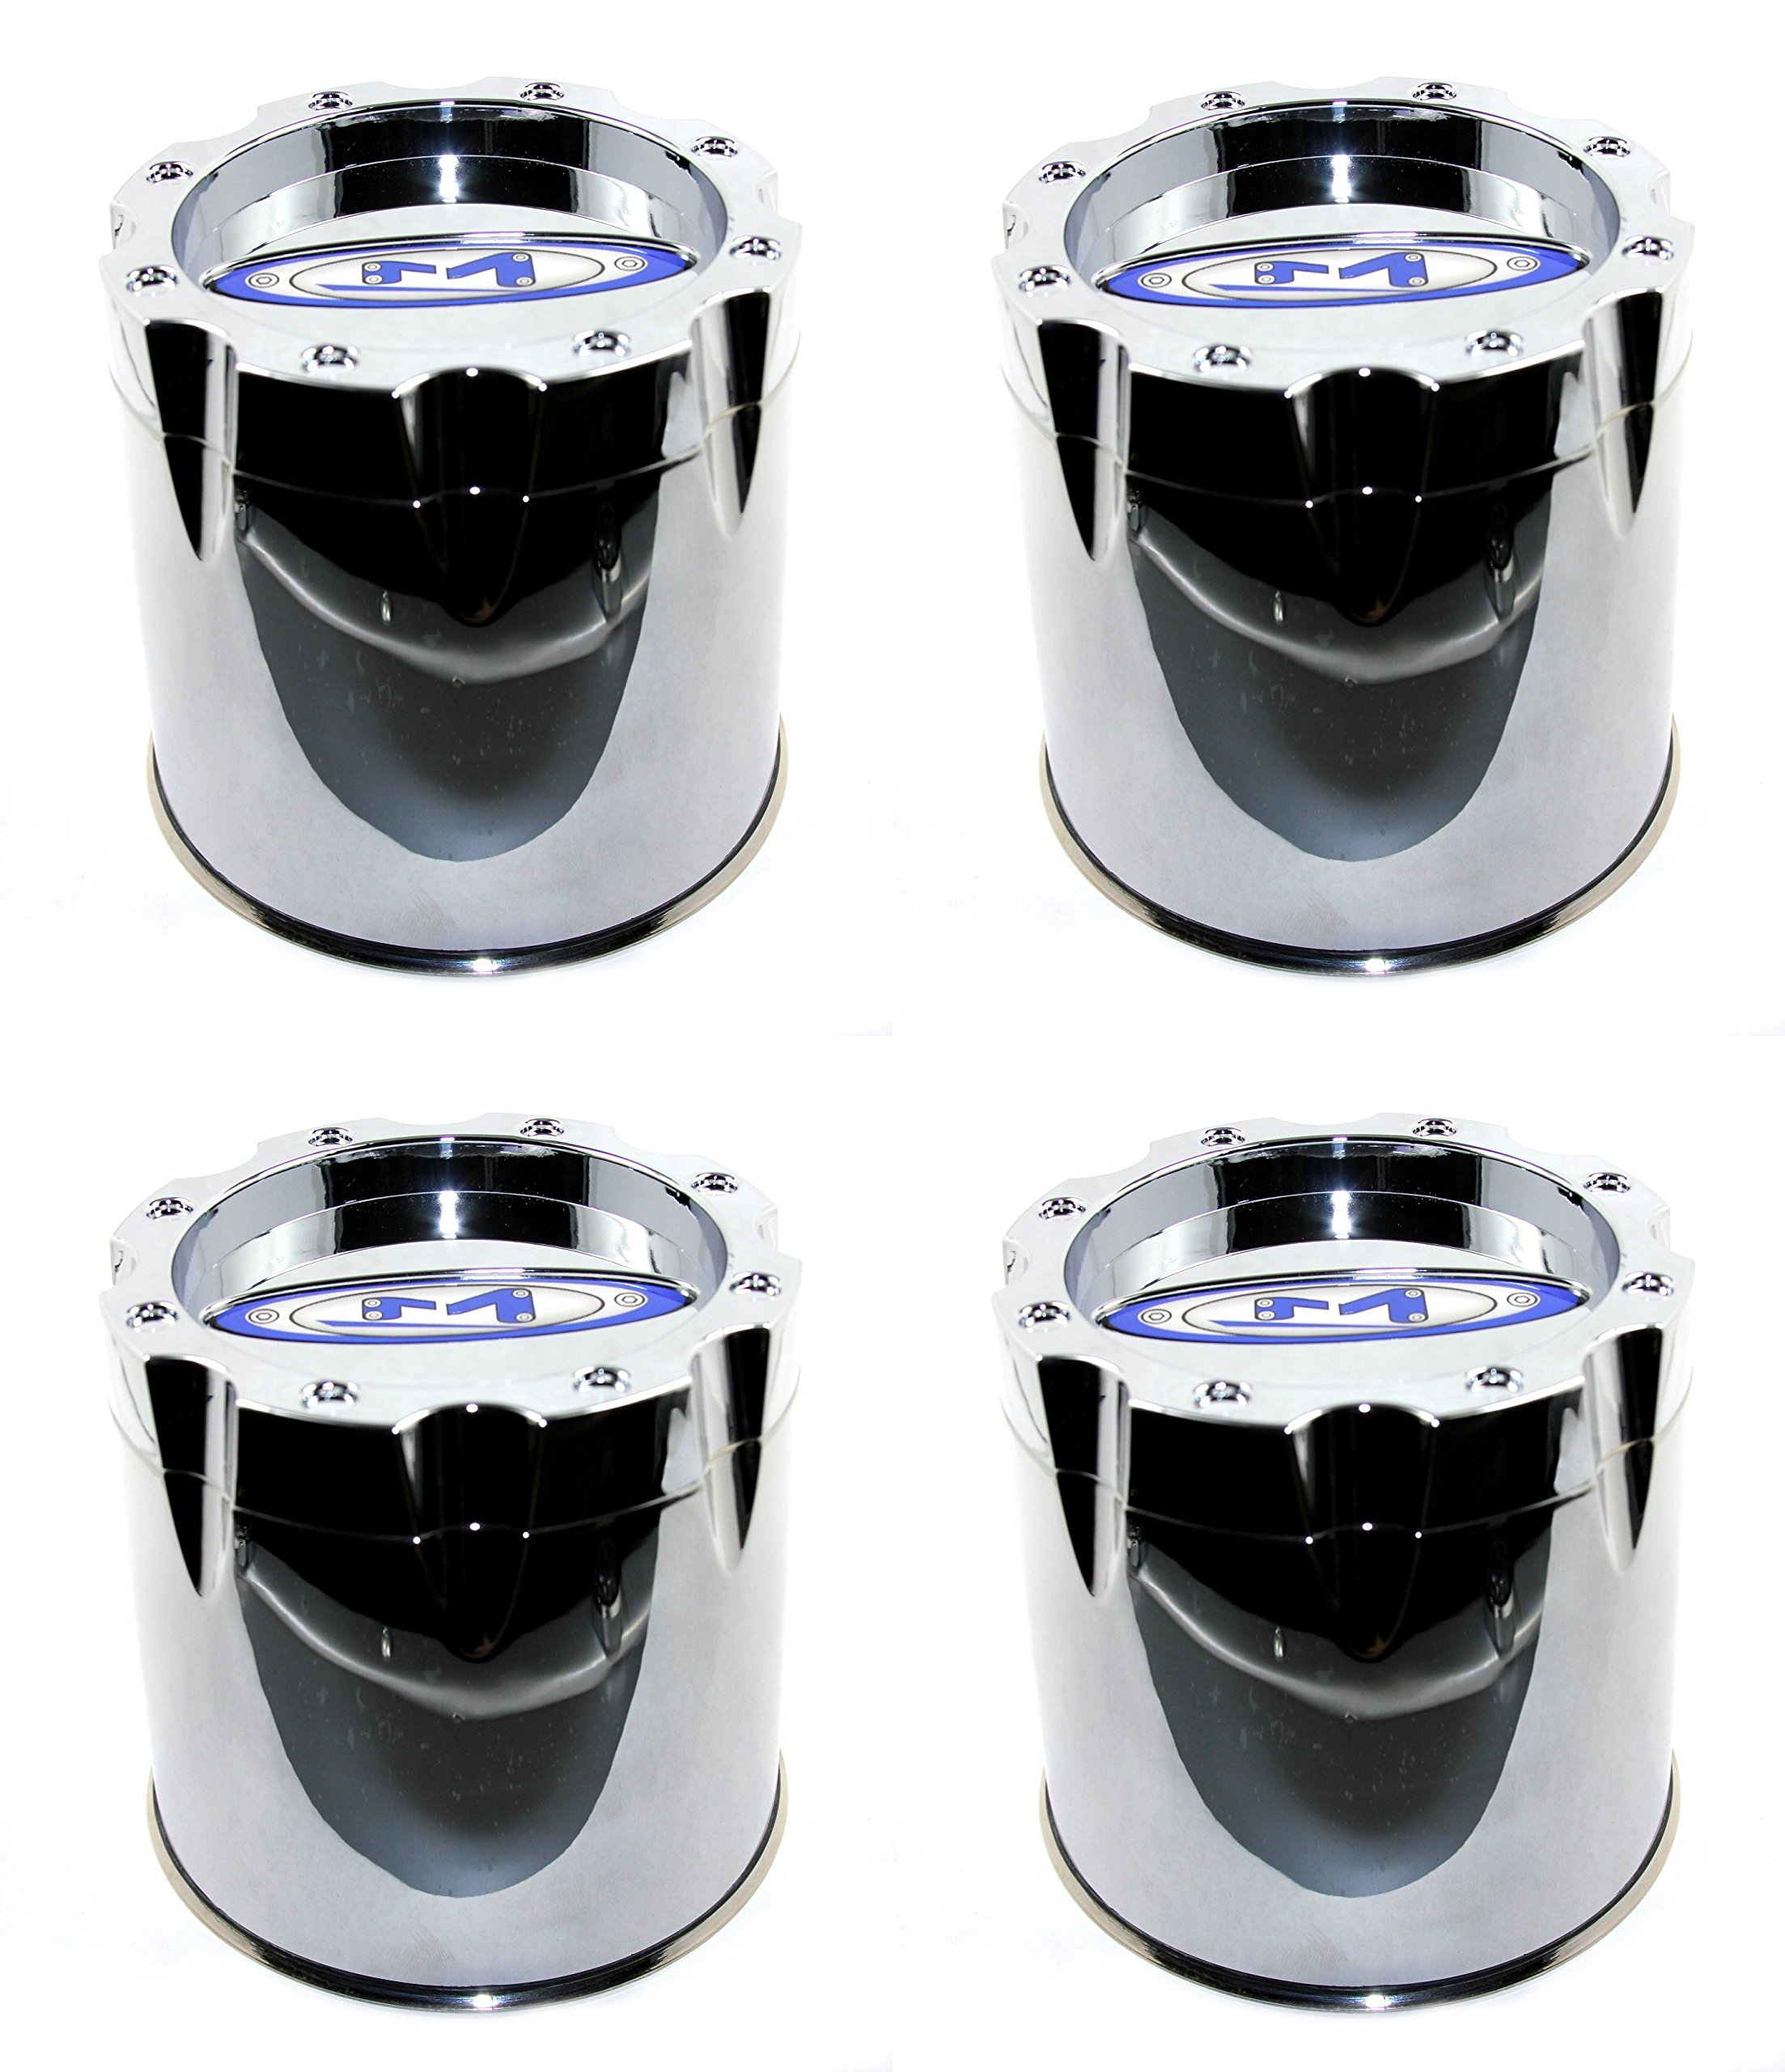 Moto Metal Set (4pcs) Chrome Center Hub Caps Push-Thru 5 3/8'' for 8 Lug MO950 MO951 MO954 RIms